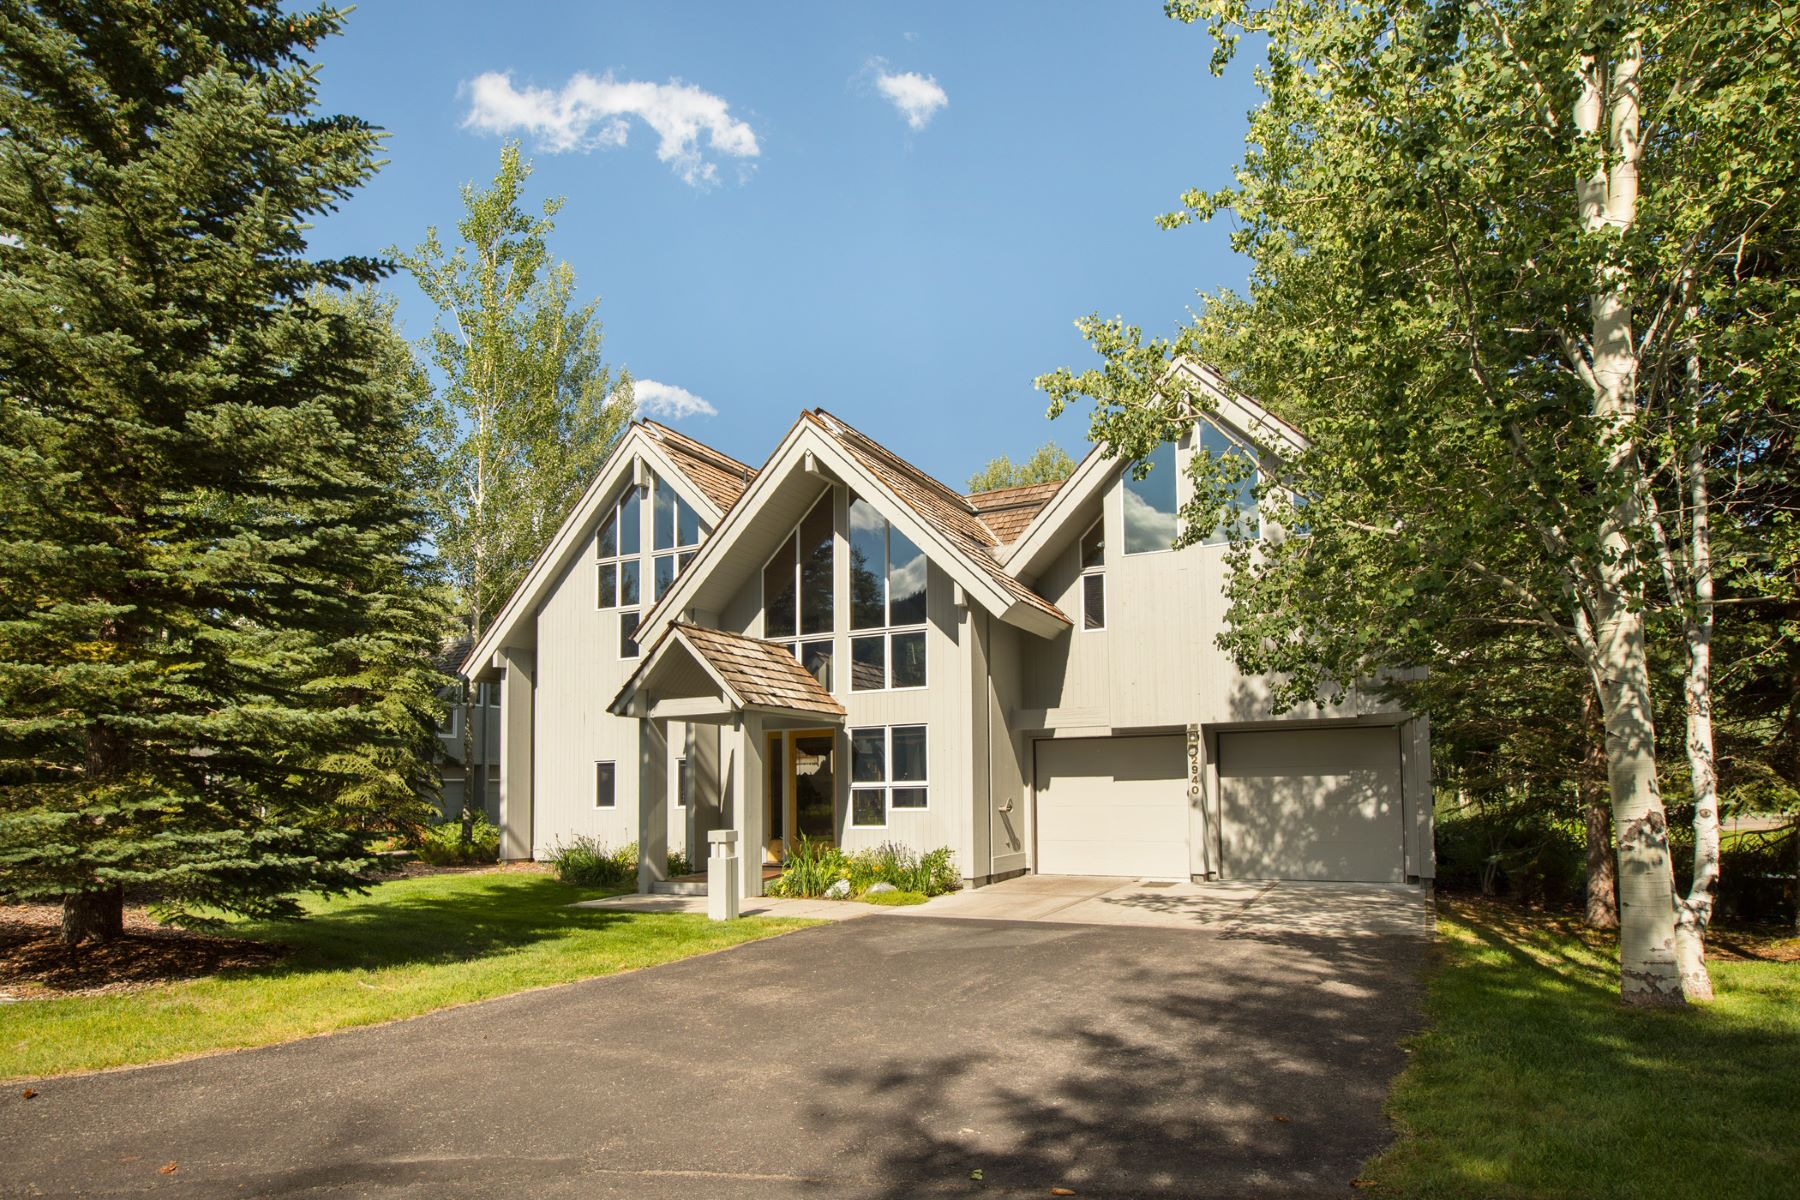 واحد منزل الأسرة للـ Sale في Serene Woodland Teton Pines Setting 2940 N White Pine Lane, Wilson, Wyoming, 83014 Jackson Hole, United States